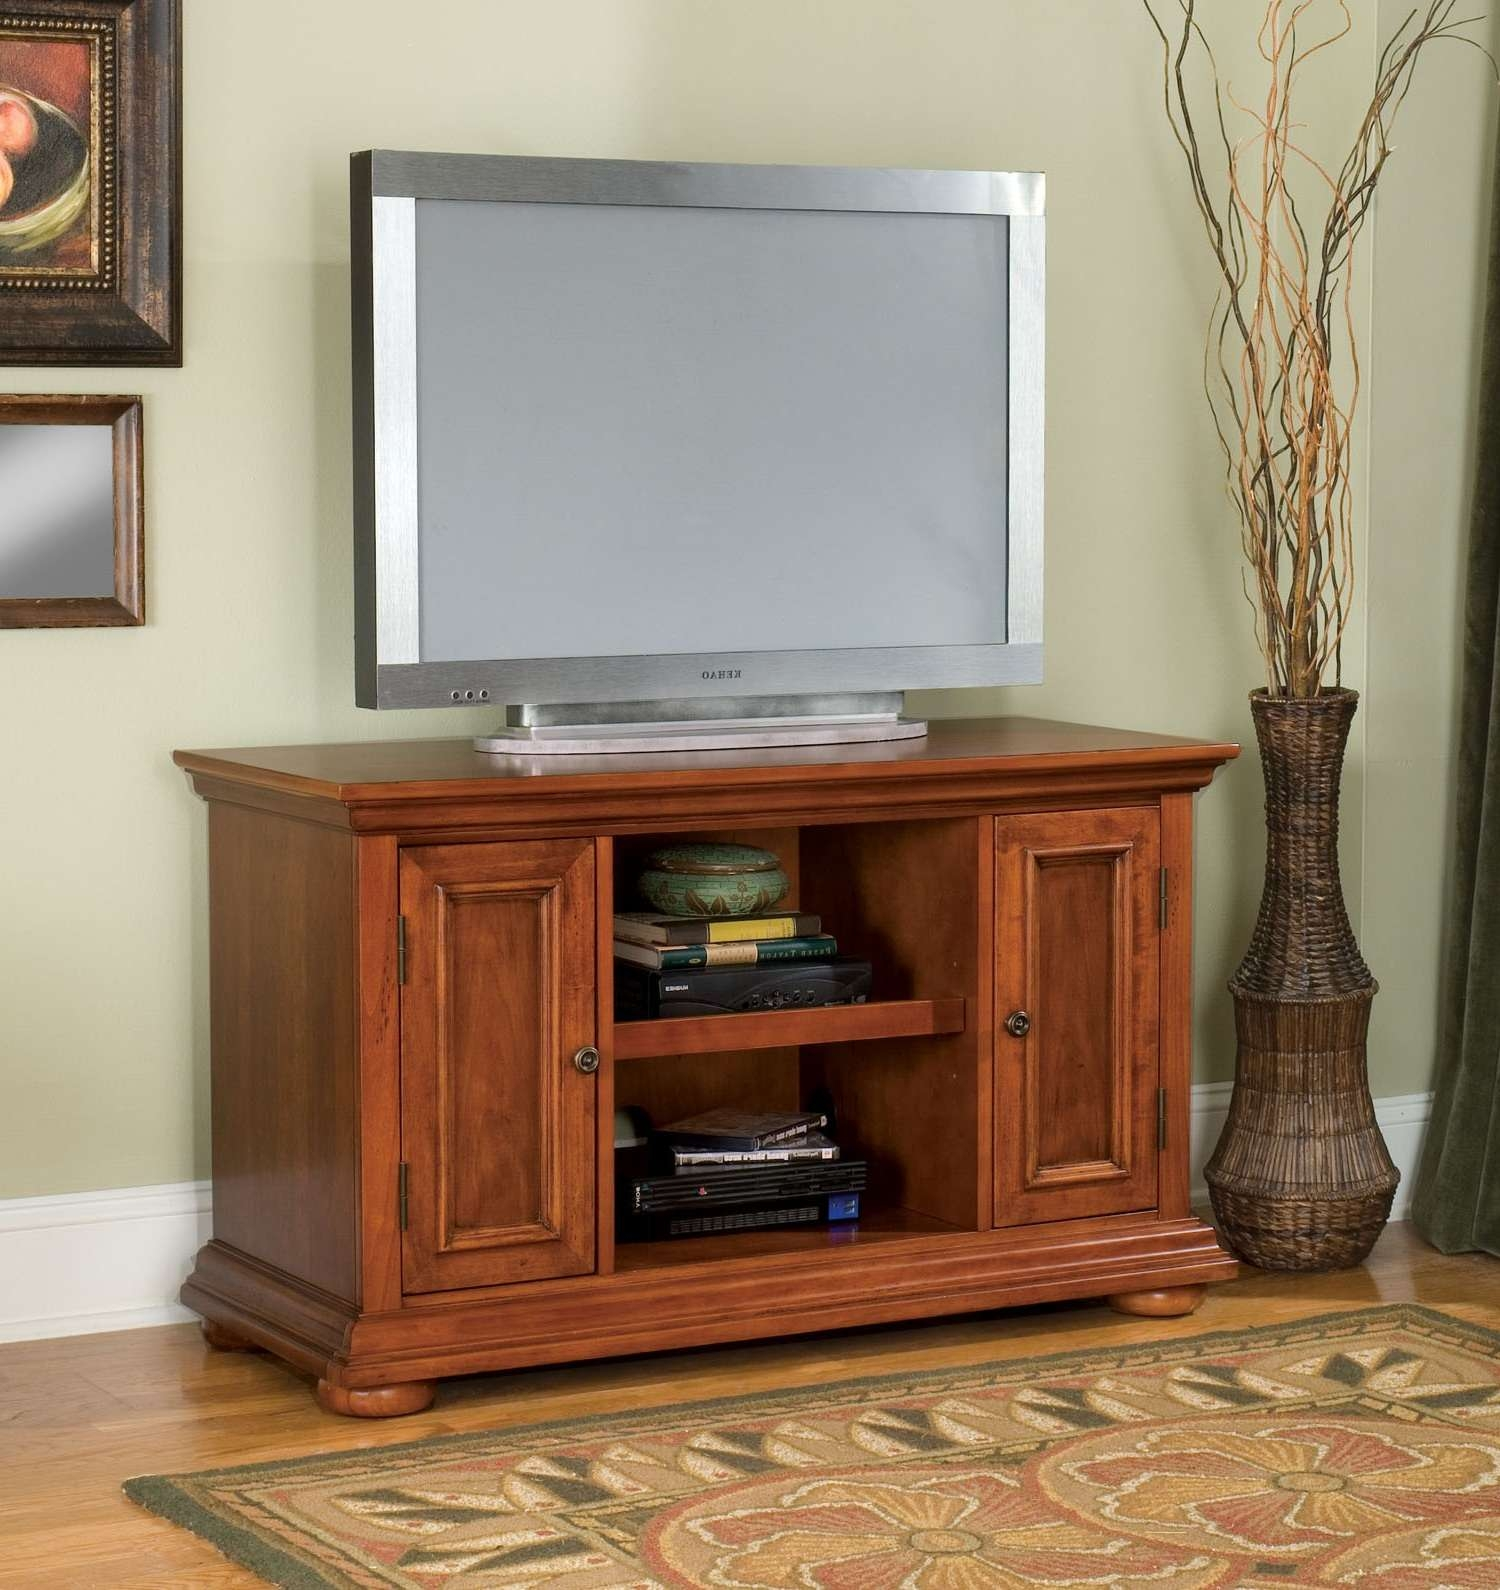 Rectangle Reverse Knife Edge Profile Cherry Wood Tv Cabinet Stand Pertaining To Cherry Wood Tv Cabinets (View 8 of 20)